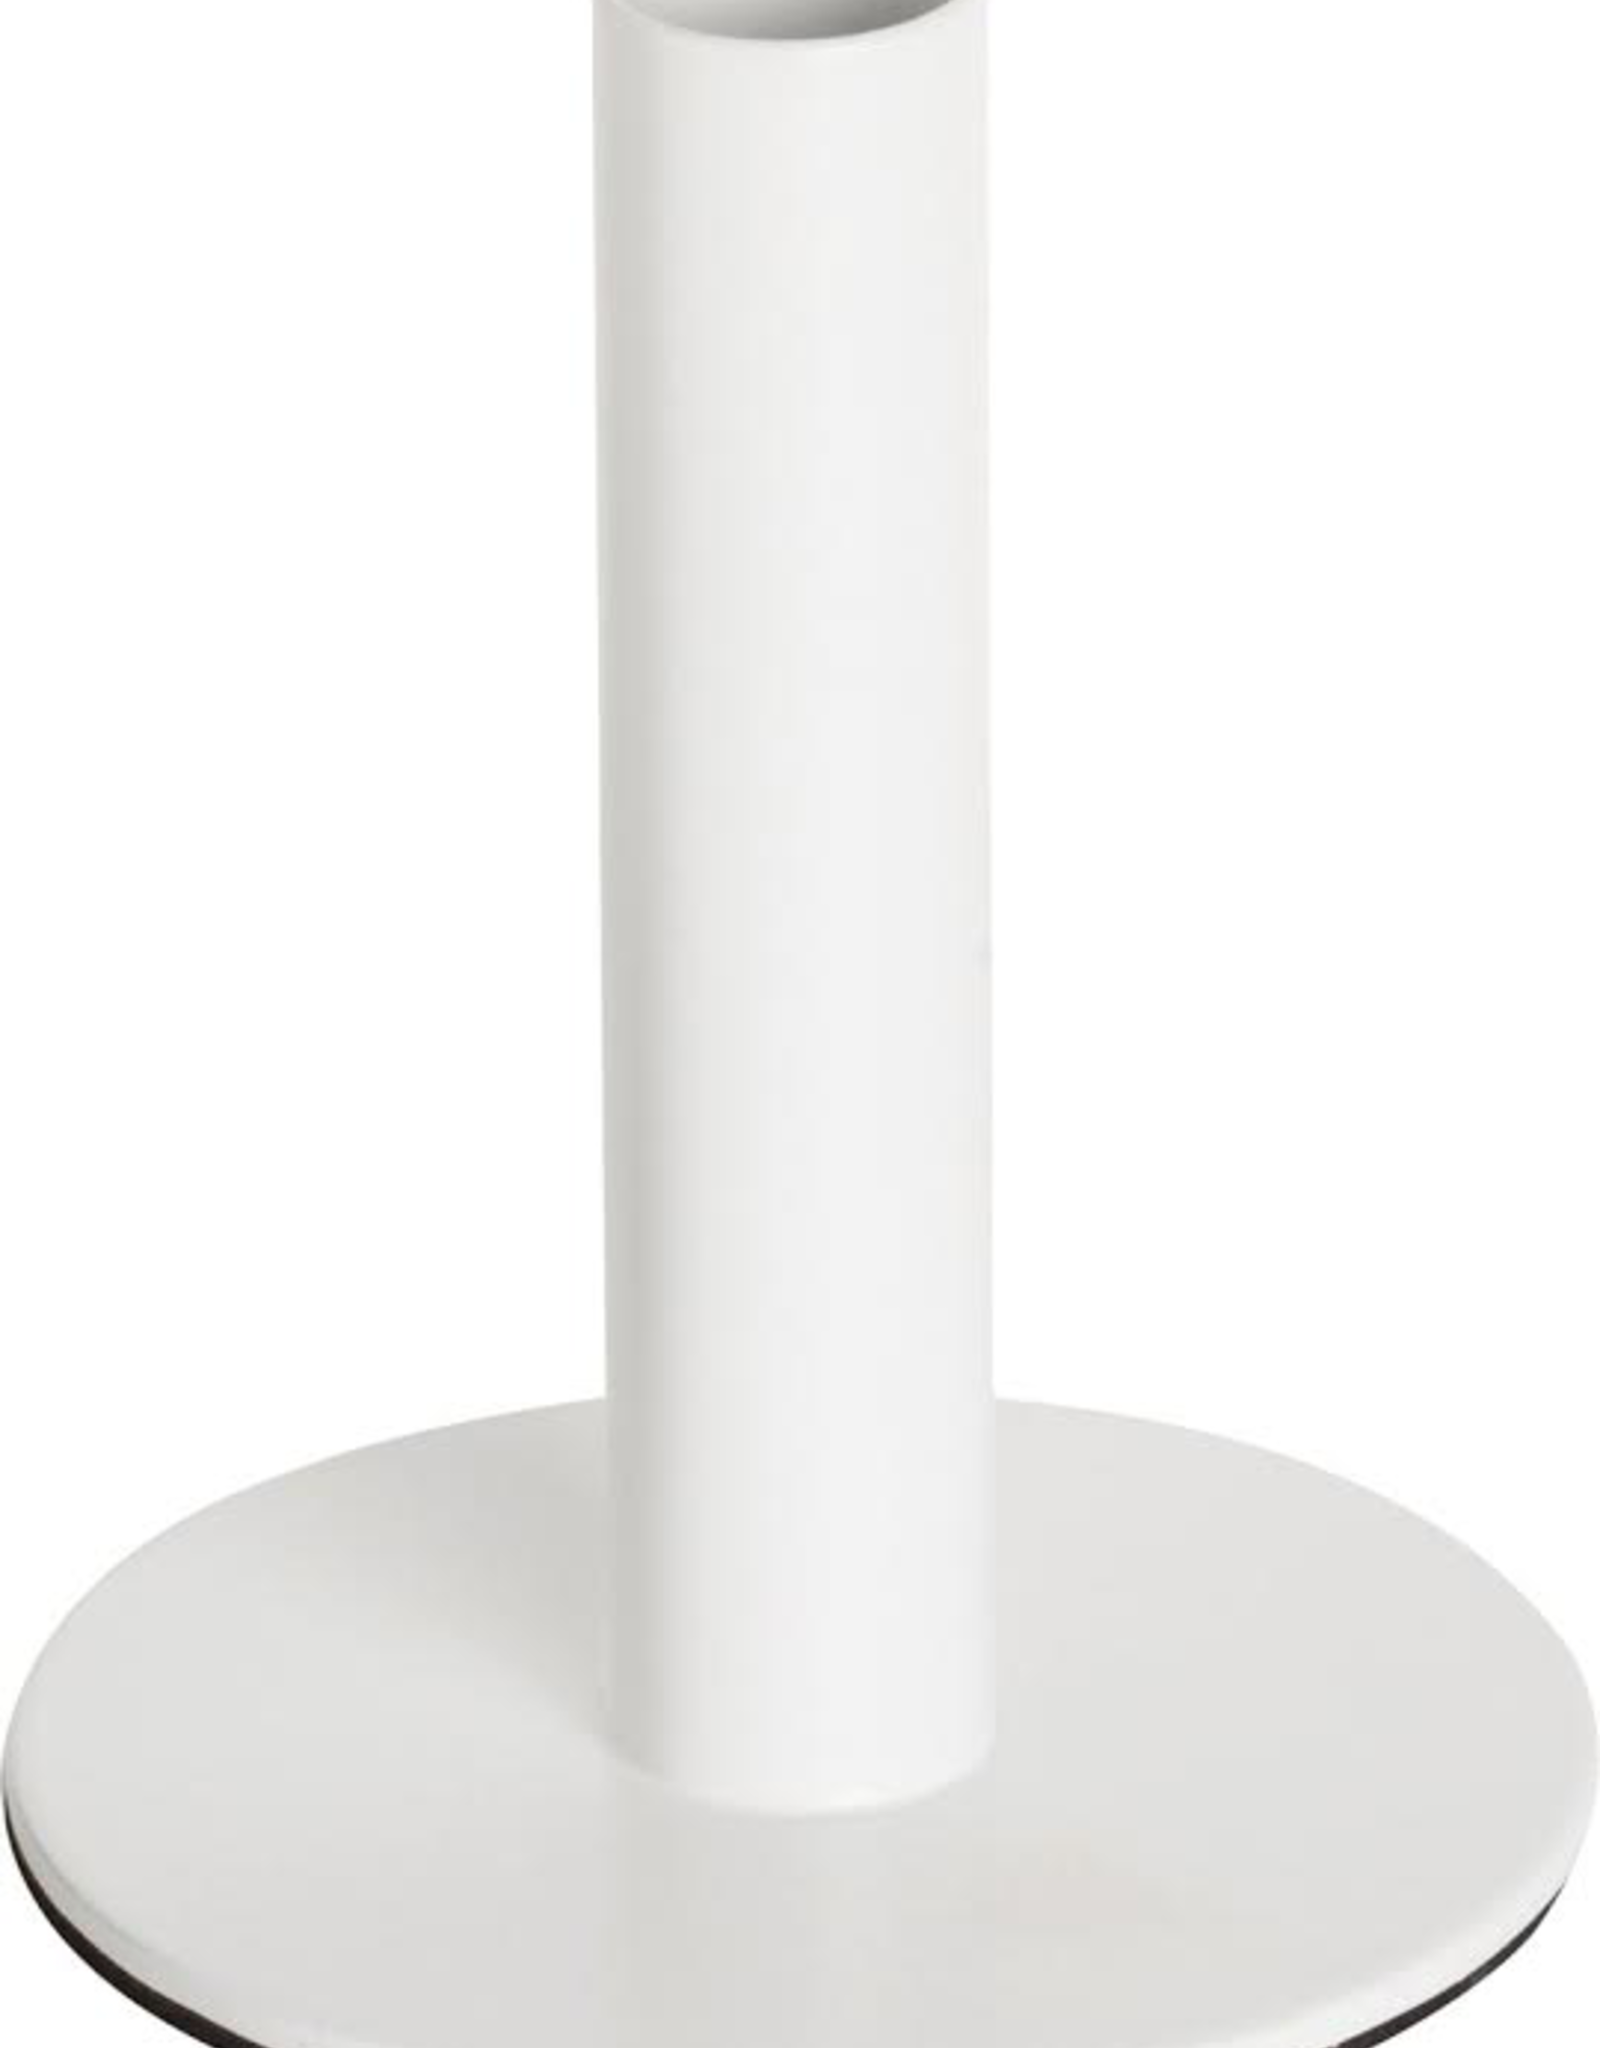 Metal Candle Holder, White Large